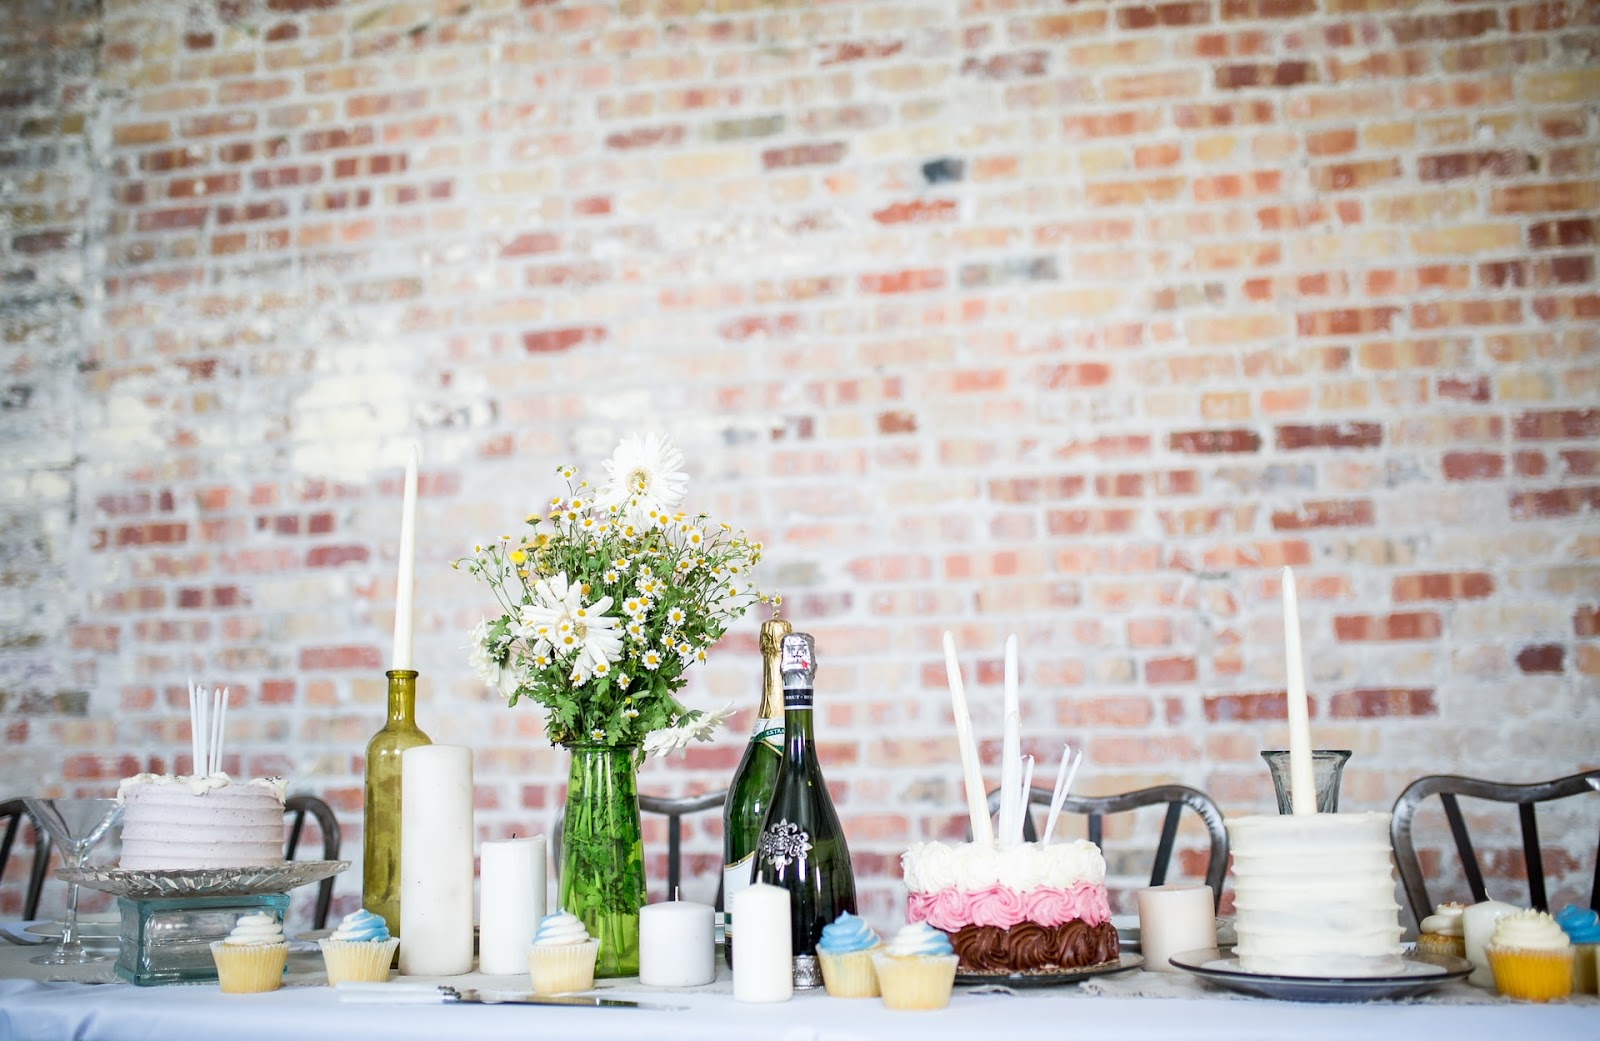 6 Tips for Planning a Memorable Anniversary Party